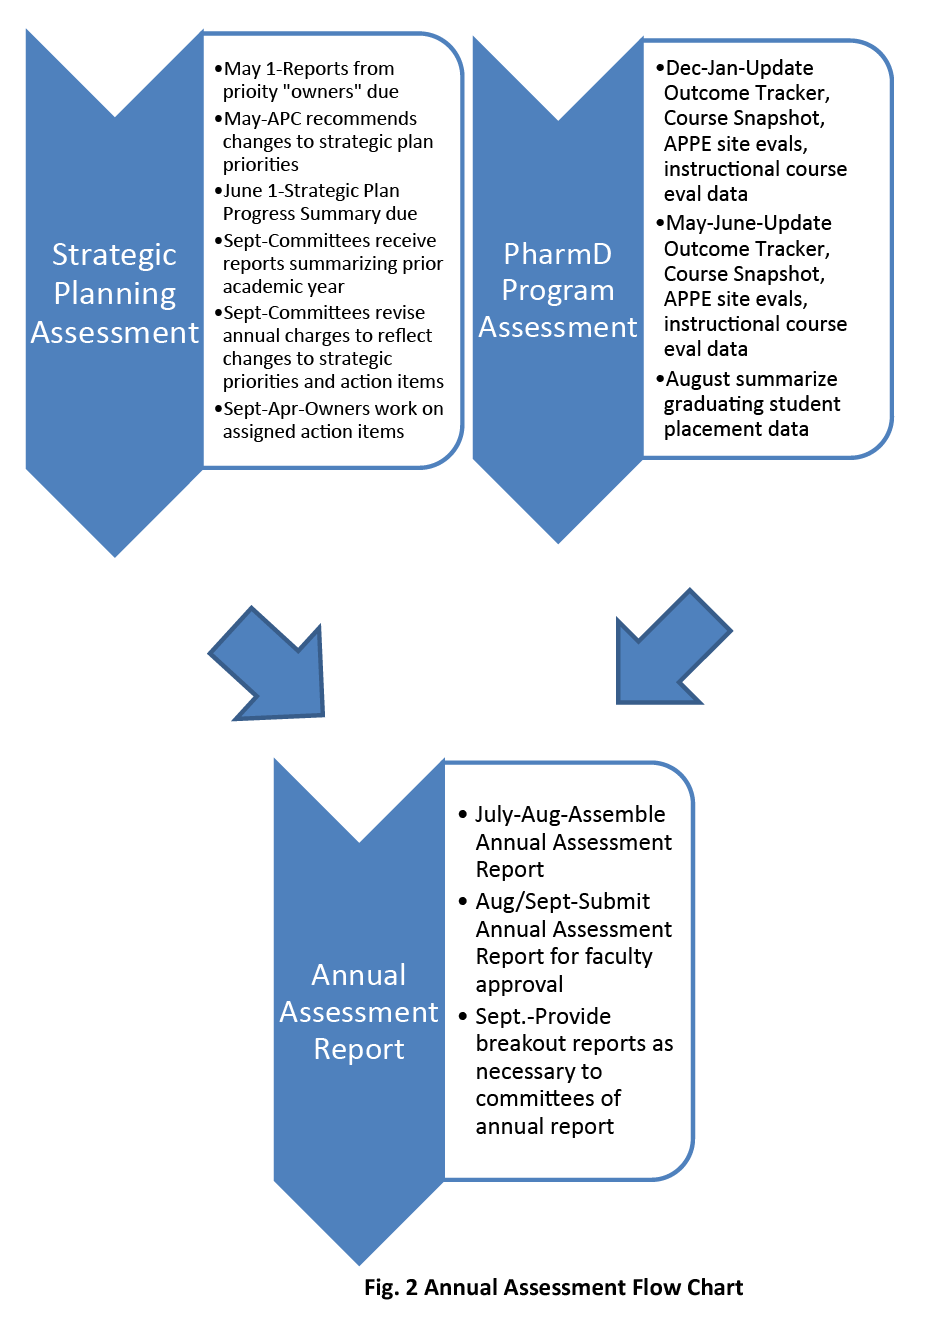 Flowchart showing process of strategic assessment